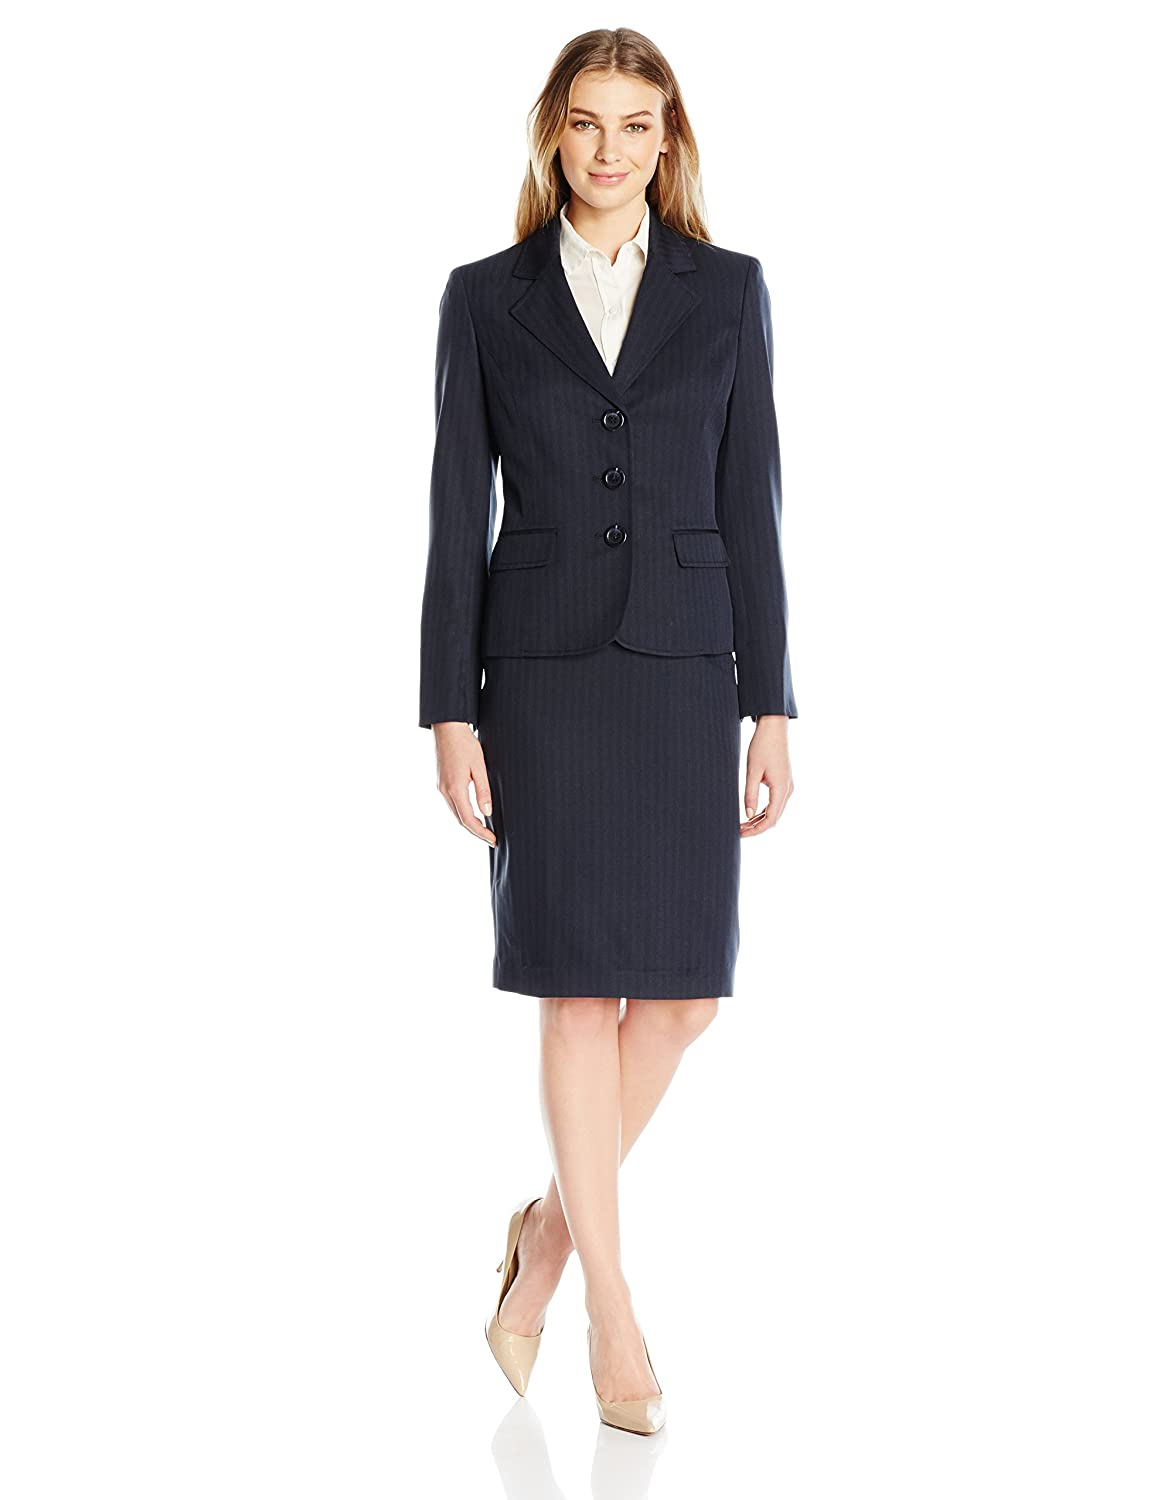 Le Suit Women's Three Button Navy Skirt Suit Le Suit Women's Suits 50035799-C50